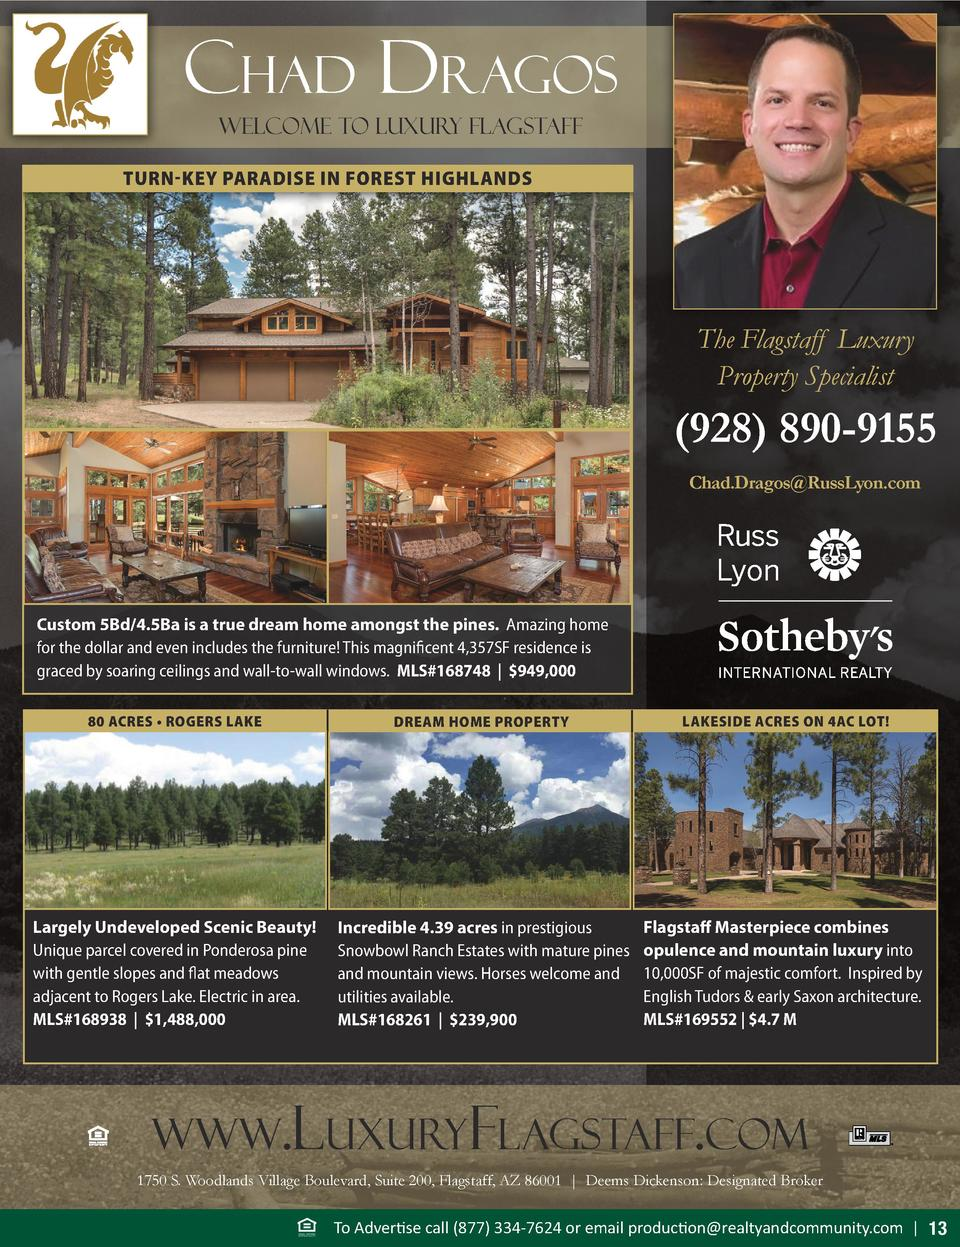 chad dragos Welcome To luxury flagstaff TURN-KEY PARADISE IN FOREST HIGHLANDS  The Flagstaff Luxury Property Specialist   ...